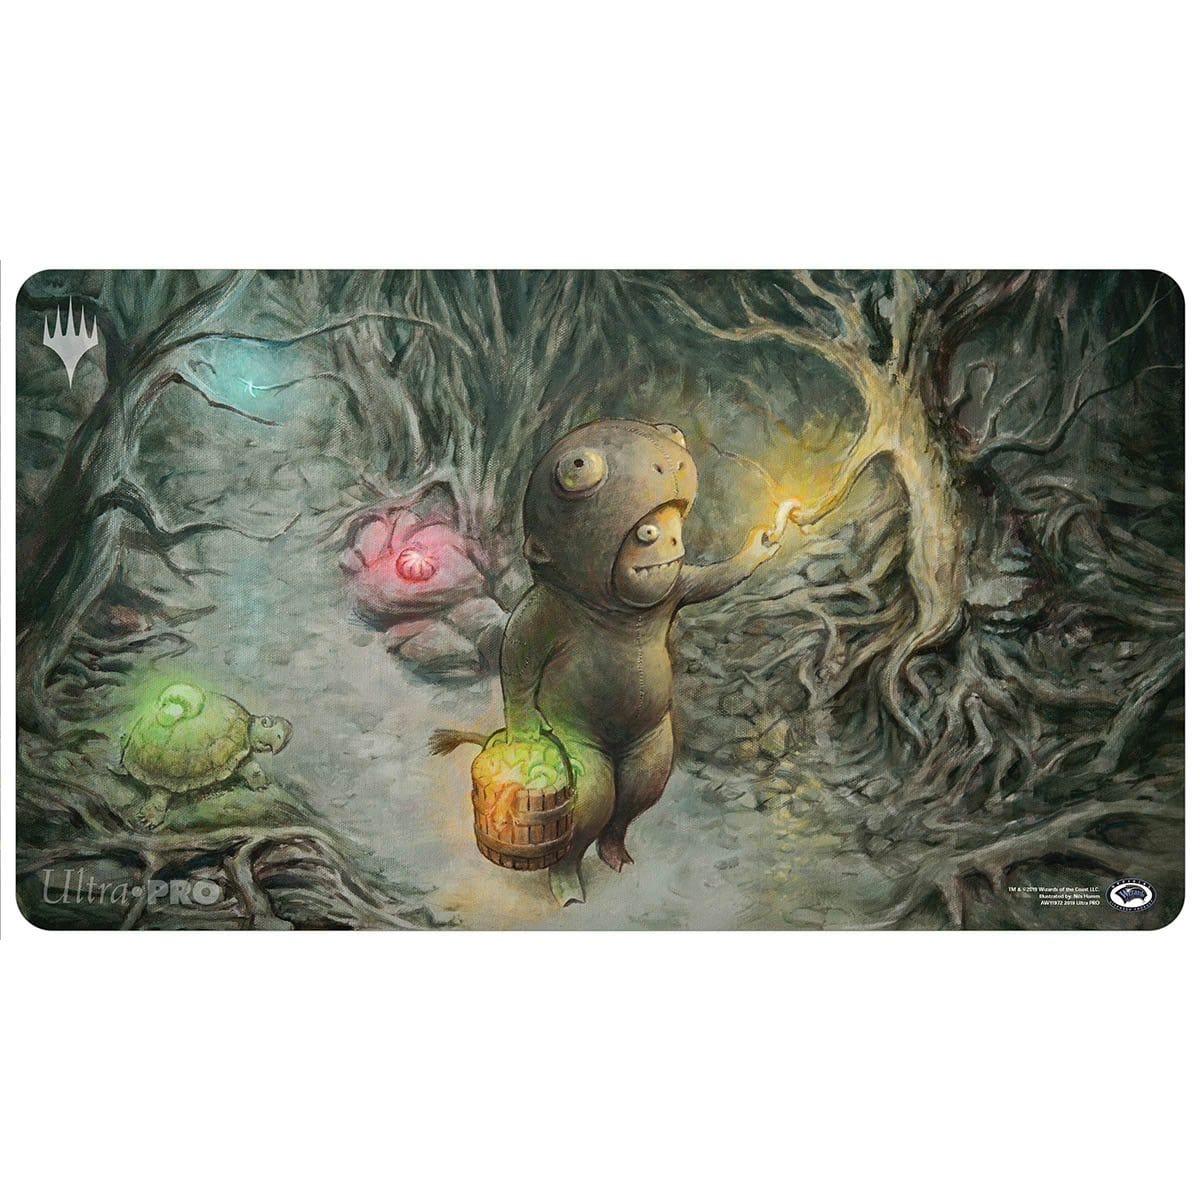 Gilder Bairn Playmat - Playmat - Original Magic Art - Accessories for Magic the Gathering and other card games